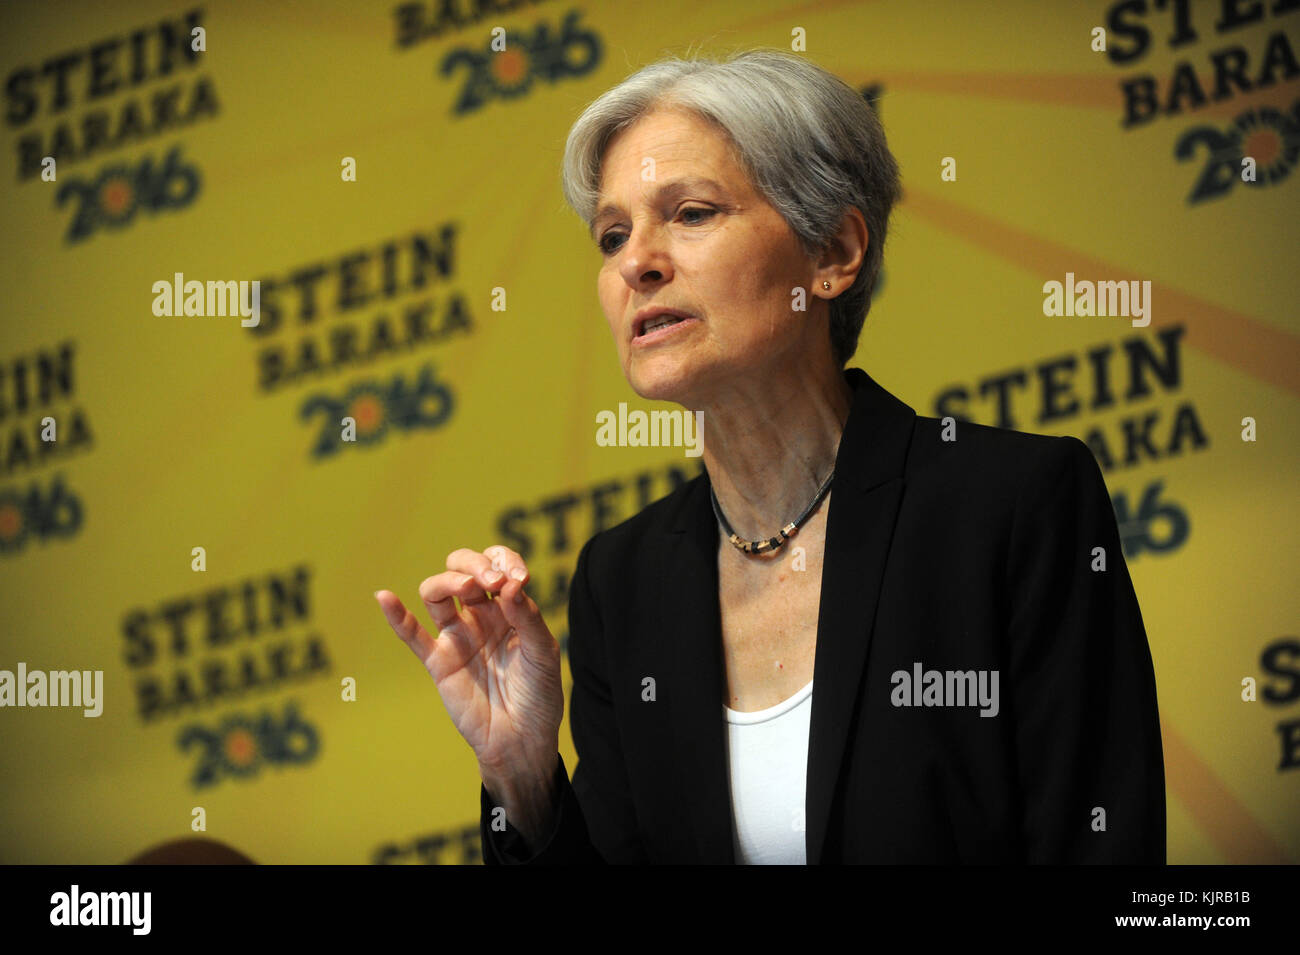 NEW YORK, NY - AUGUST 19: Green Party presidential nominee Jill Stein discusses 'Green New Deal' in New York - 2016 Stock Photo